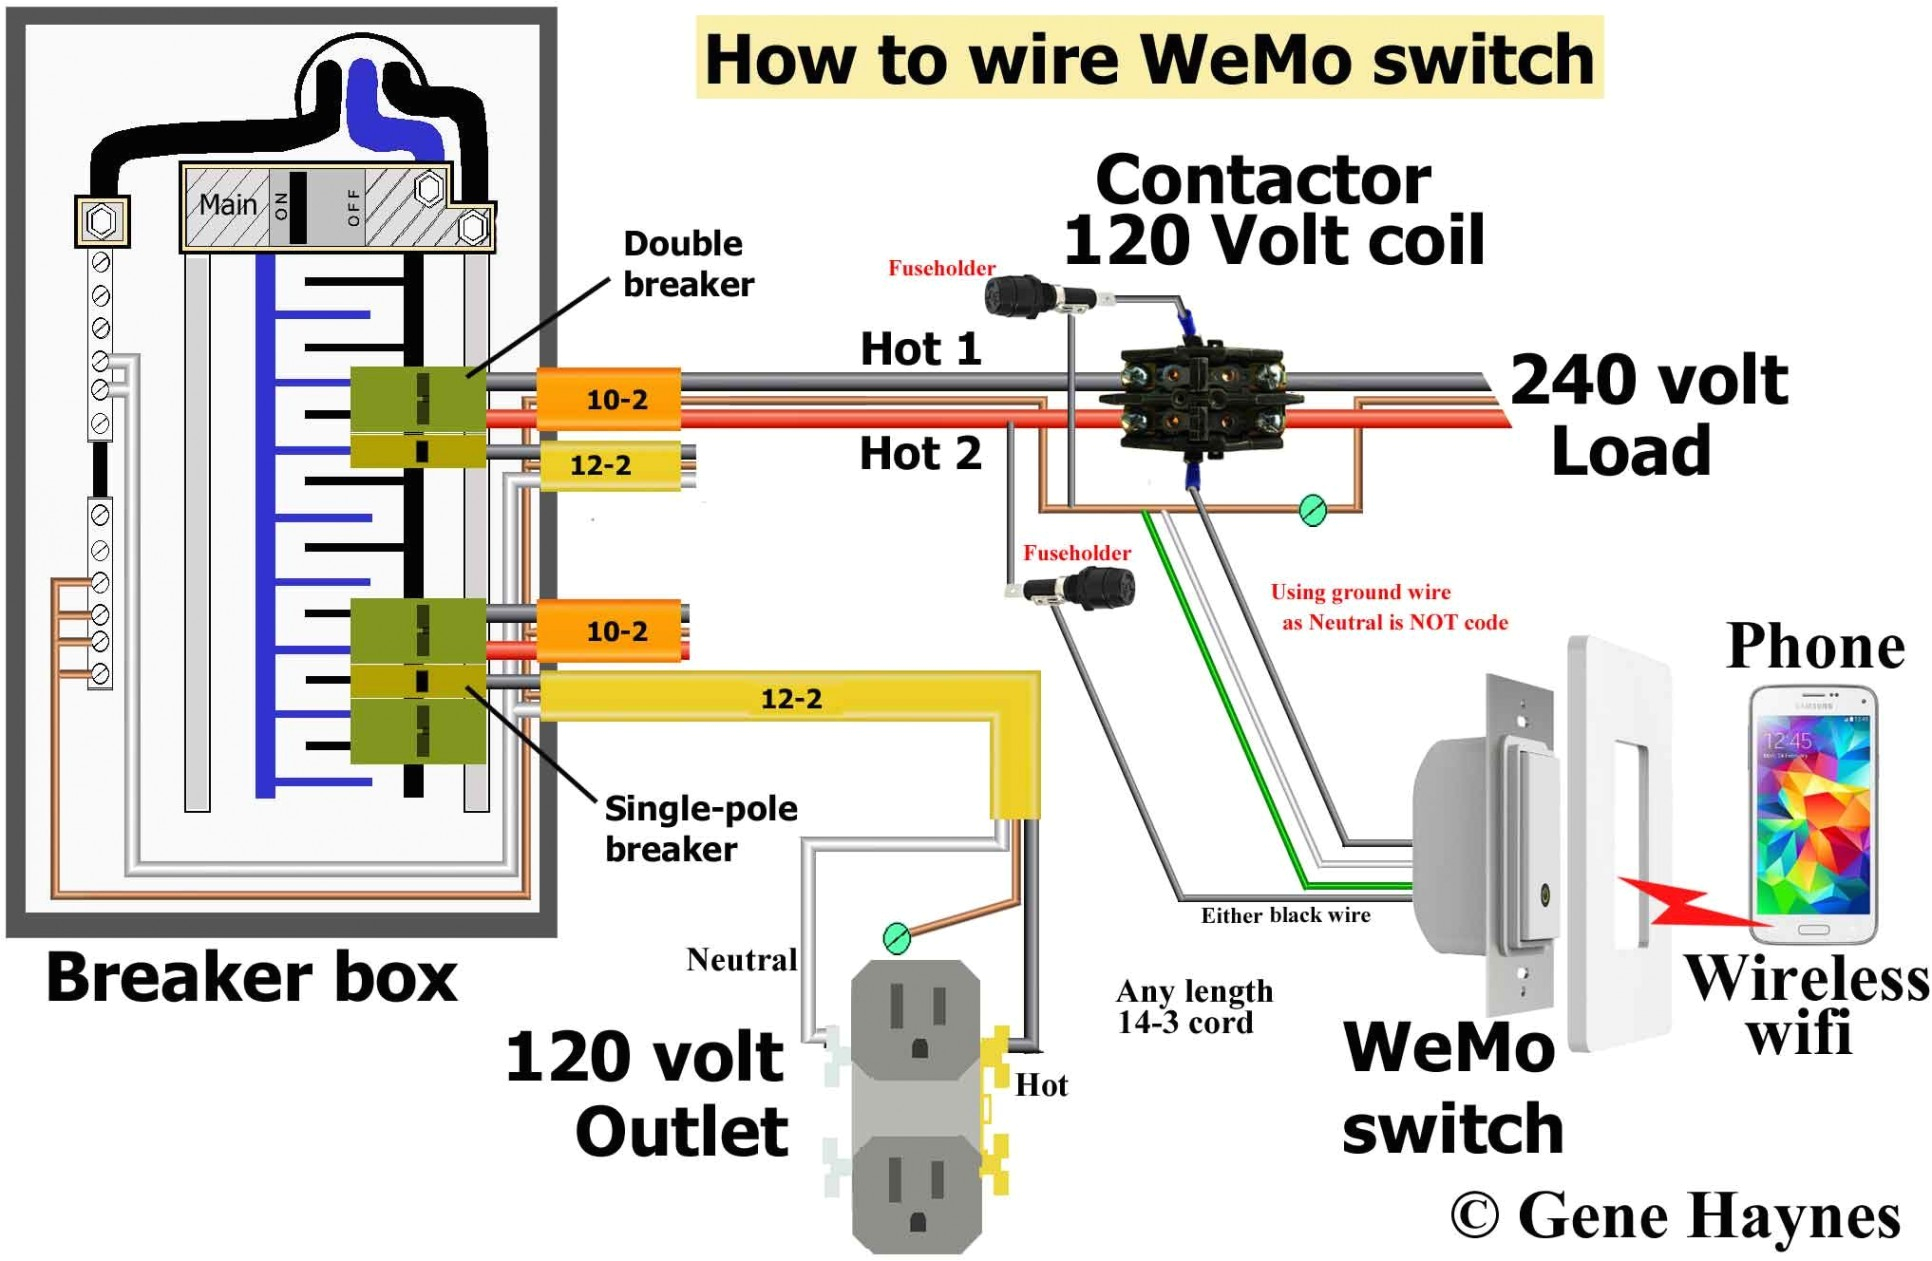 pull out 220 volt switch wiring diagram wiring diagram databaselight switch wiring diagram 240 volt